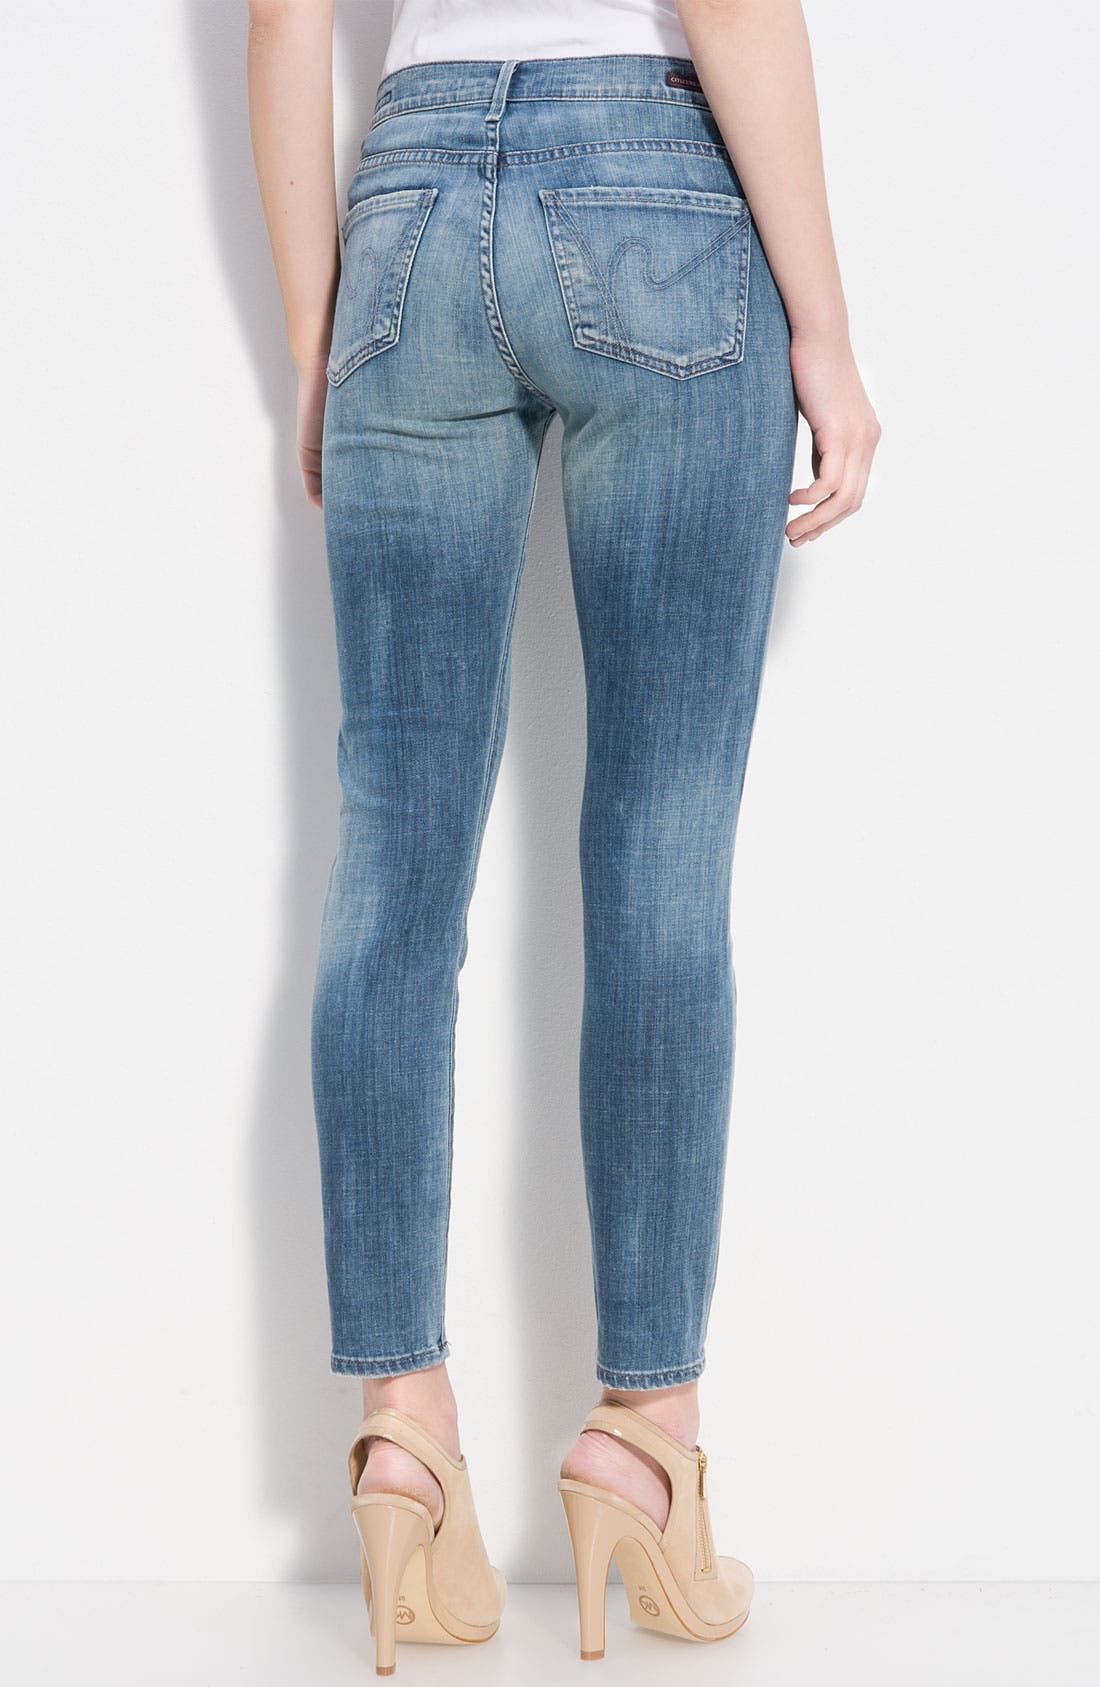 Alternate Image 1 Selected - Citizens of Humanity 'Thompson' Crop Skinny Jeans (True Wash)